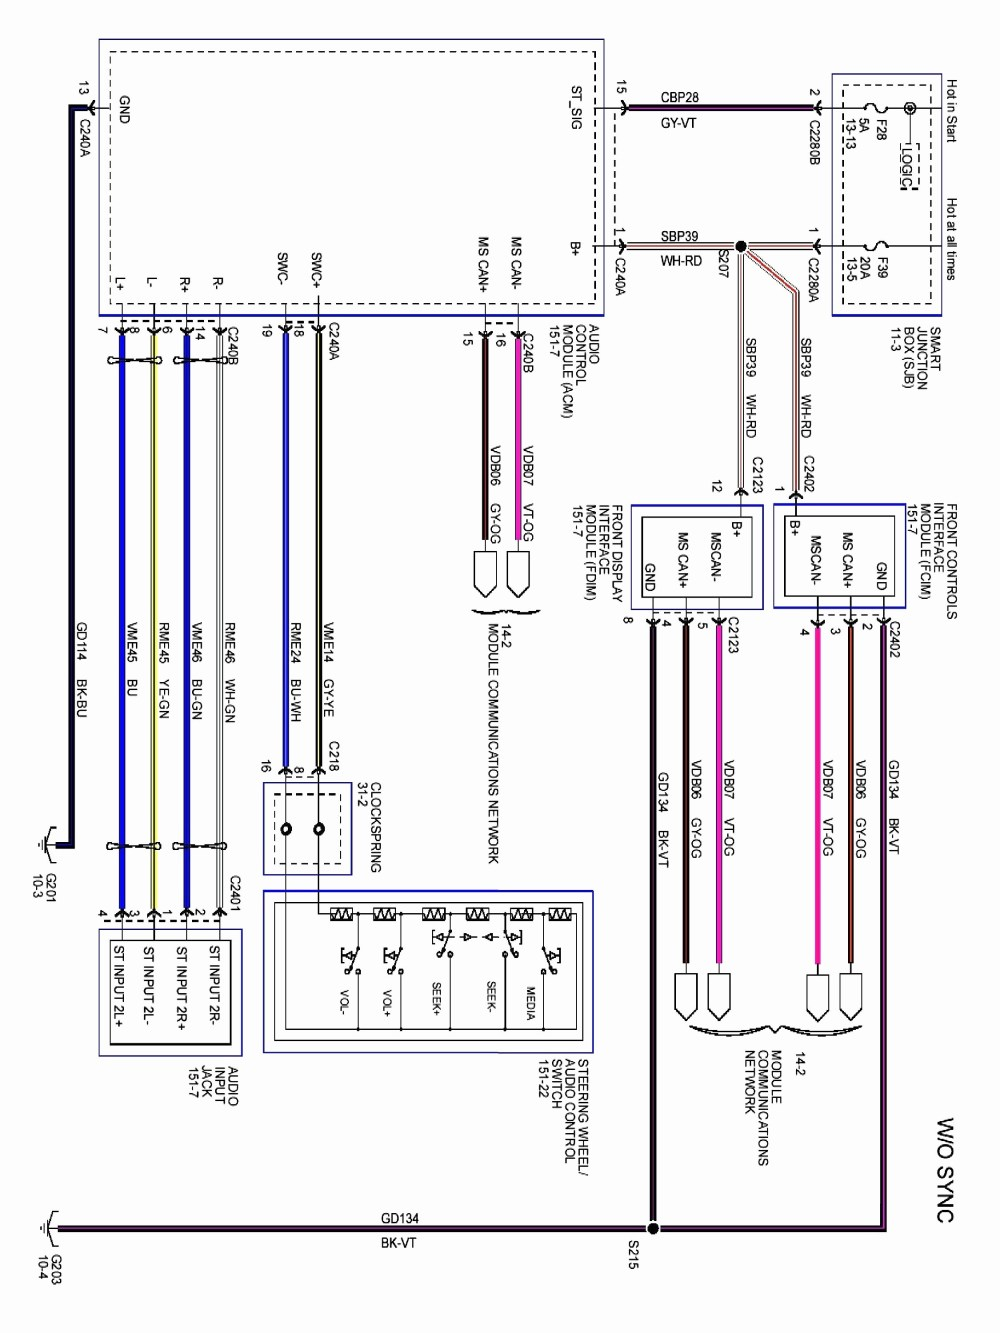 medium resolution of radio wiring diagram collection wiring diagram for amplifier car stereo best amplifier wiring diagram inspirational